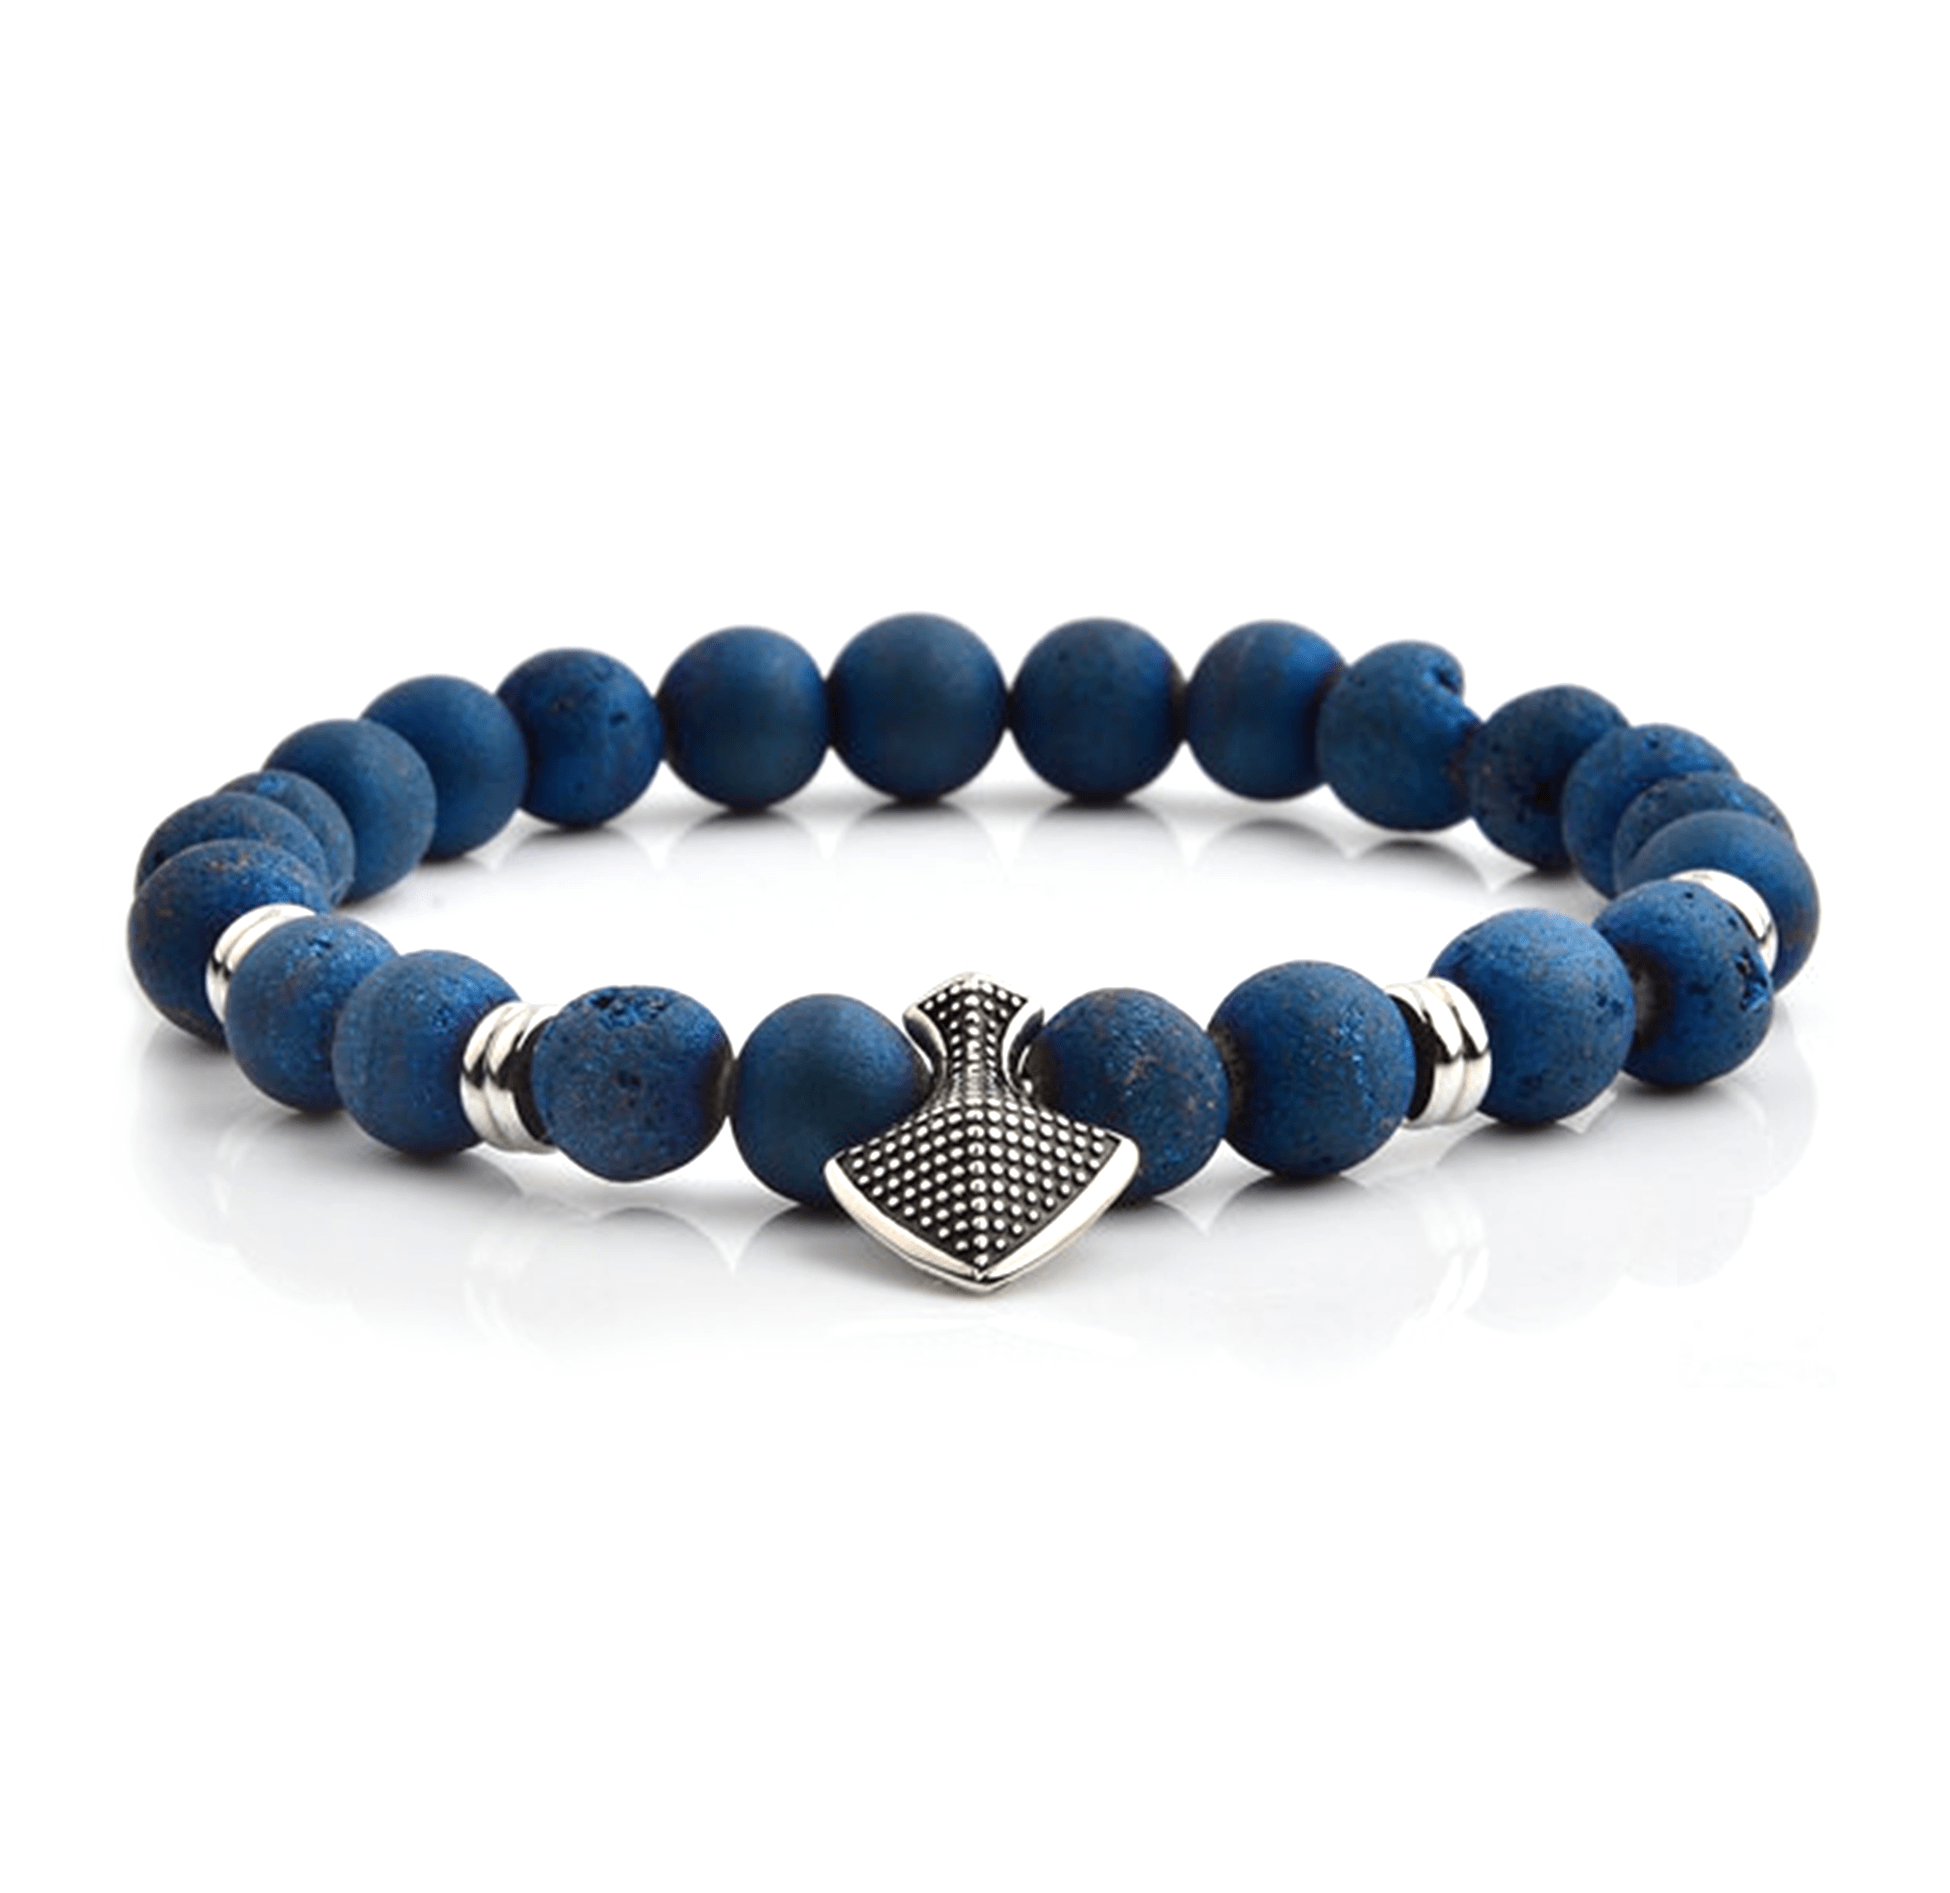 HYLIZO X Series 234 - Blue Grunge beaded Shield Edition bracelet with 316 Stainless Steel Shield